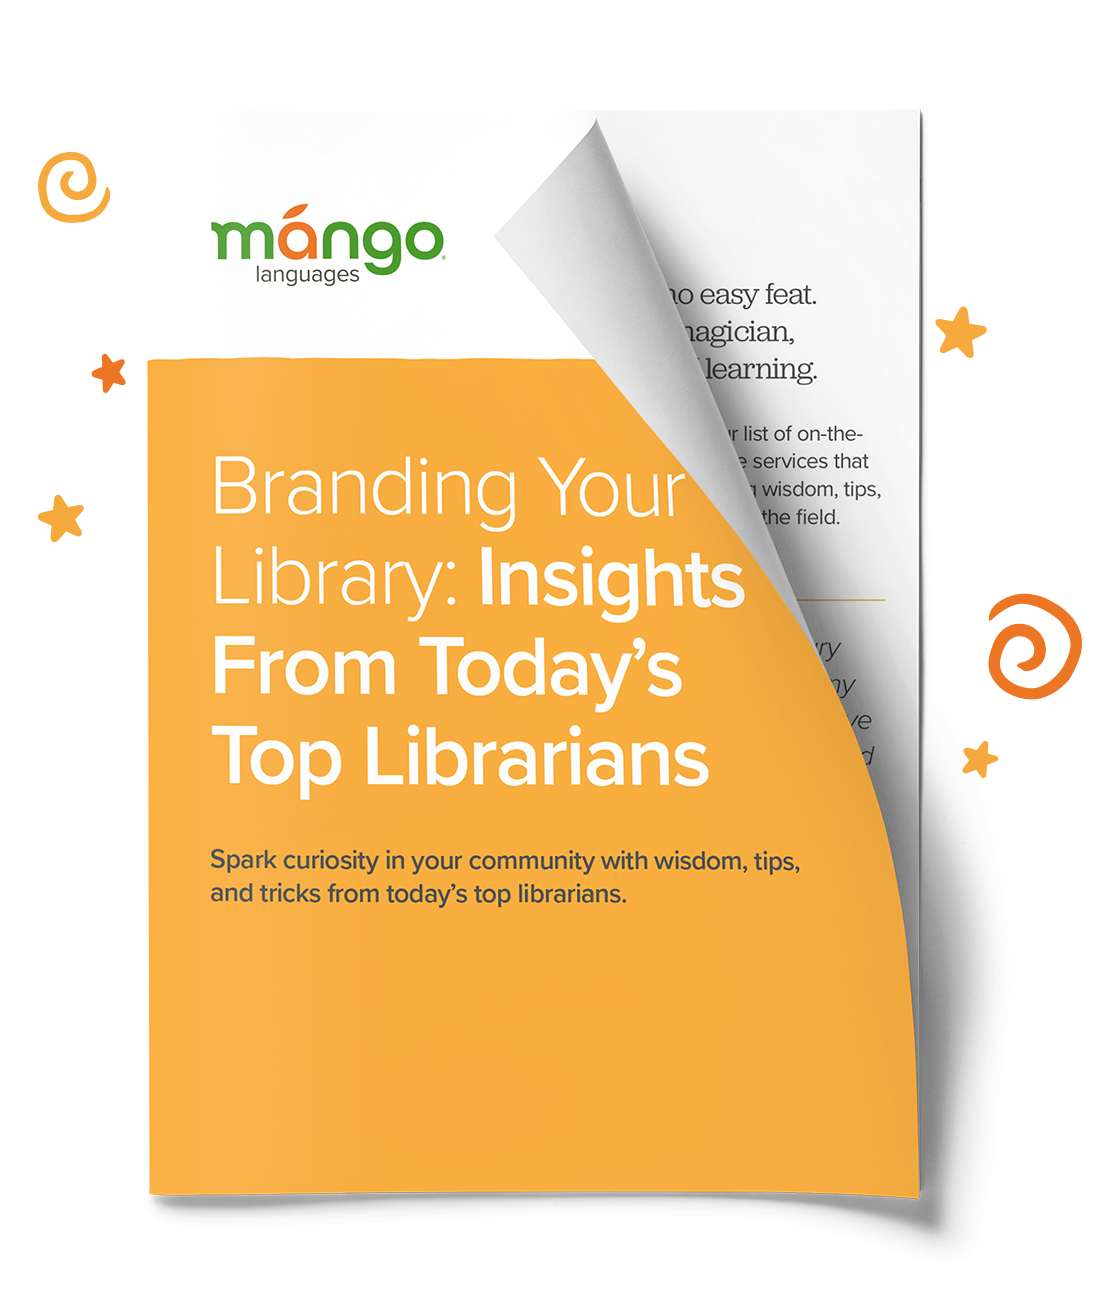 mango-inbound-brand-your-library.png